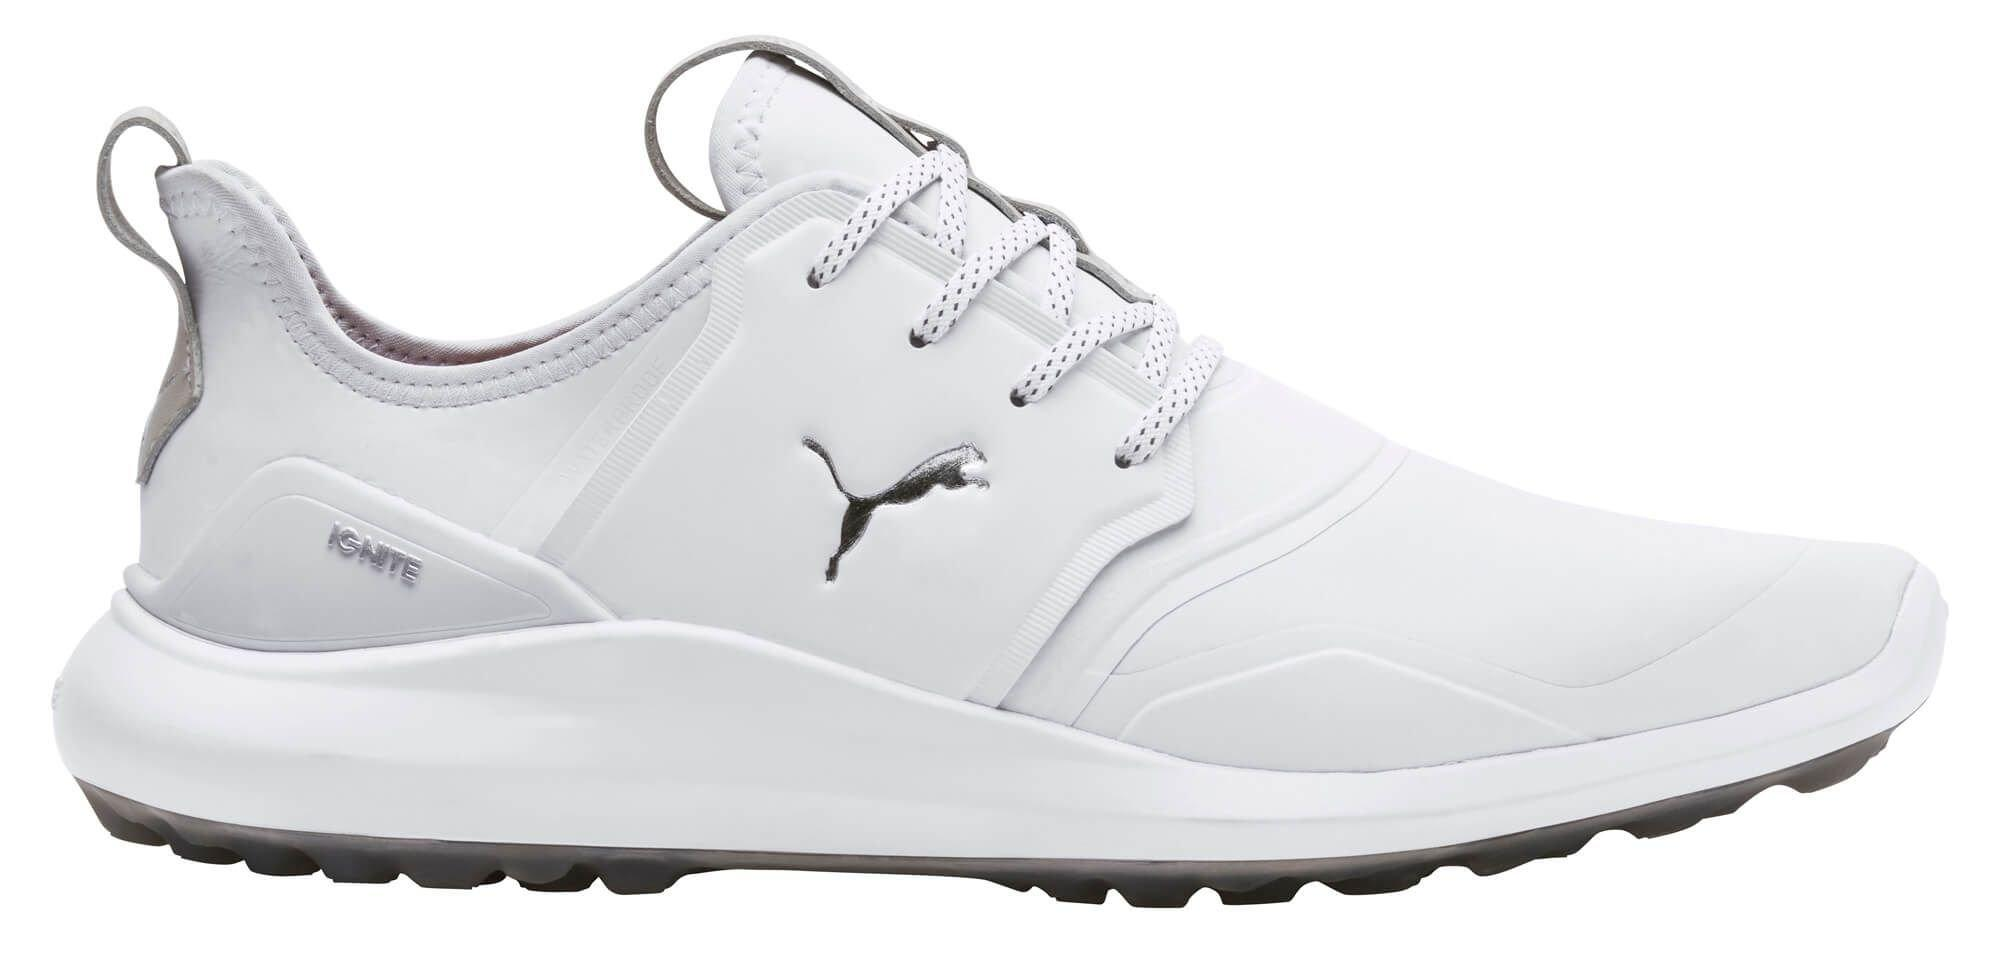 Puma Ignite Nxt Pro Golf Shoes White Silver Gray Violet Carl S Golfland